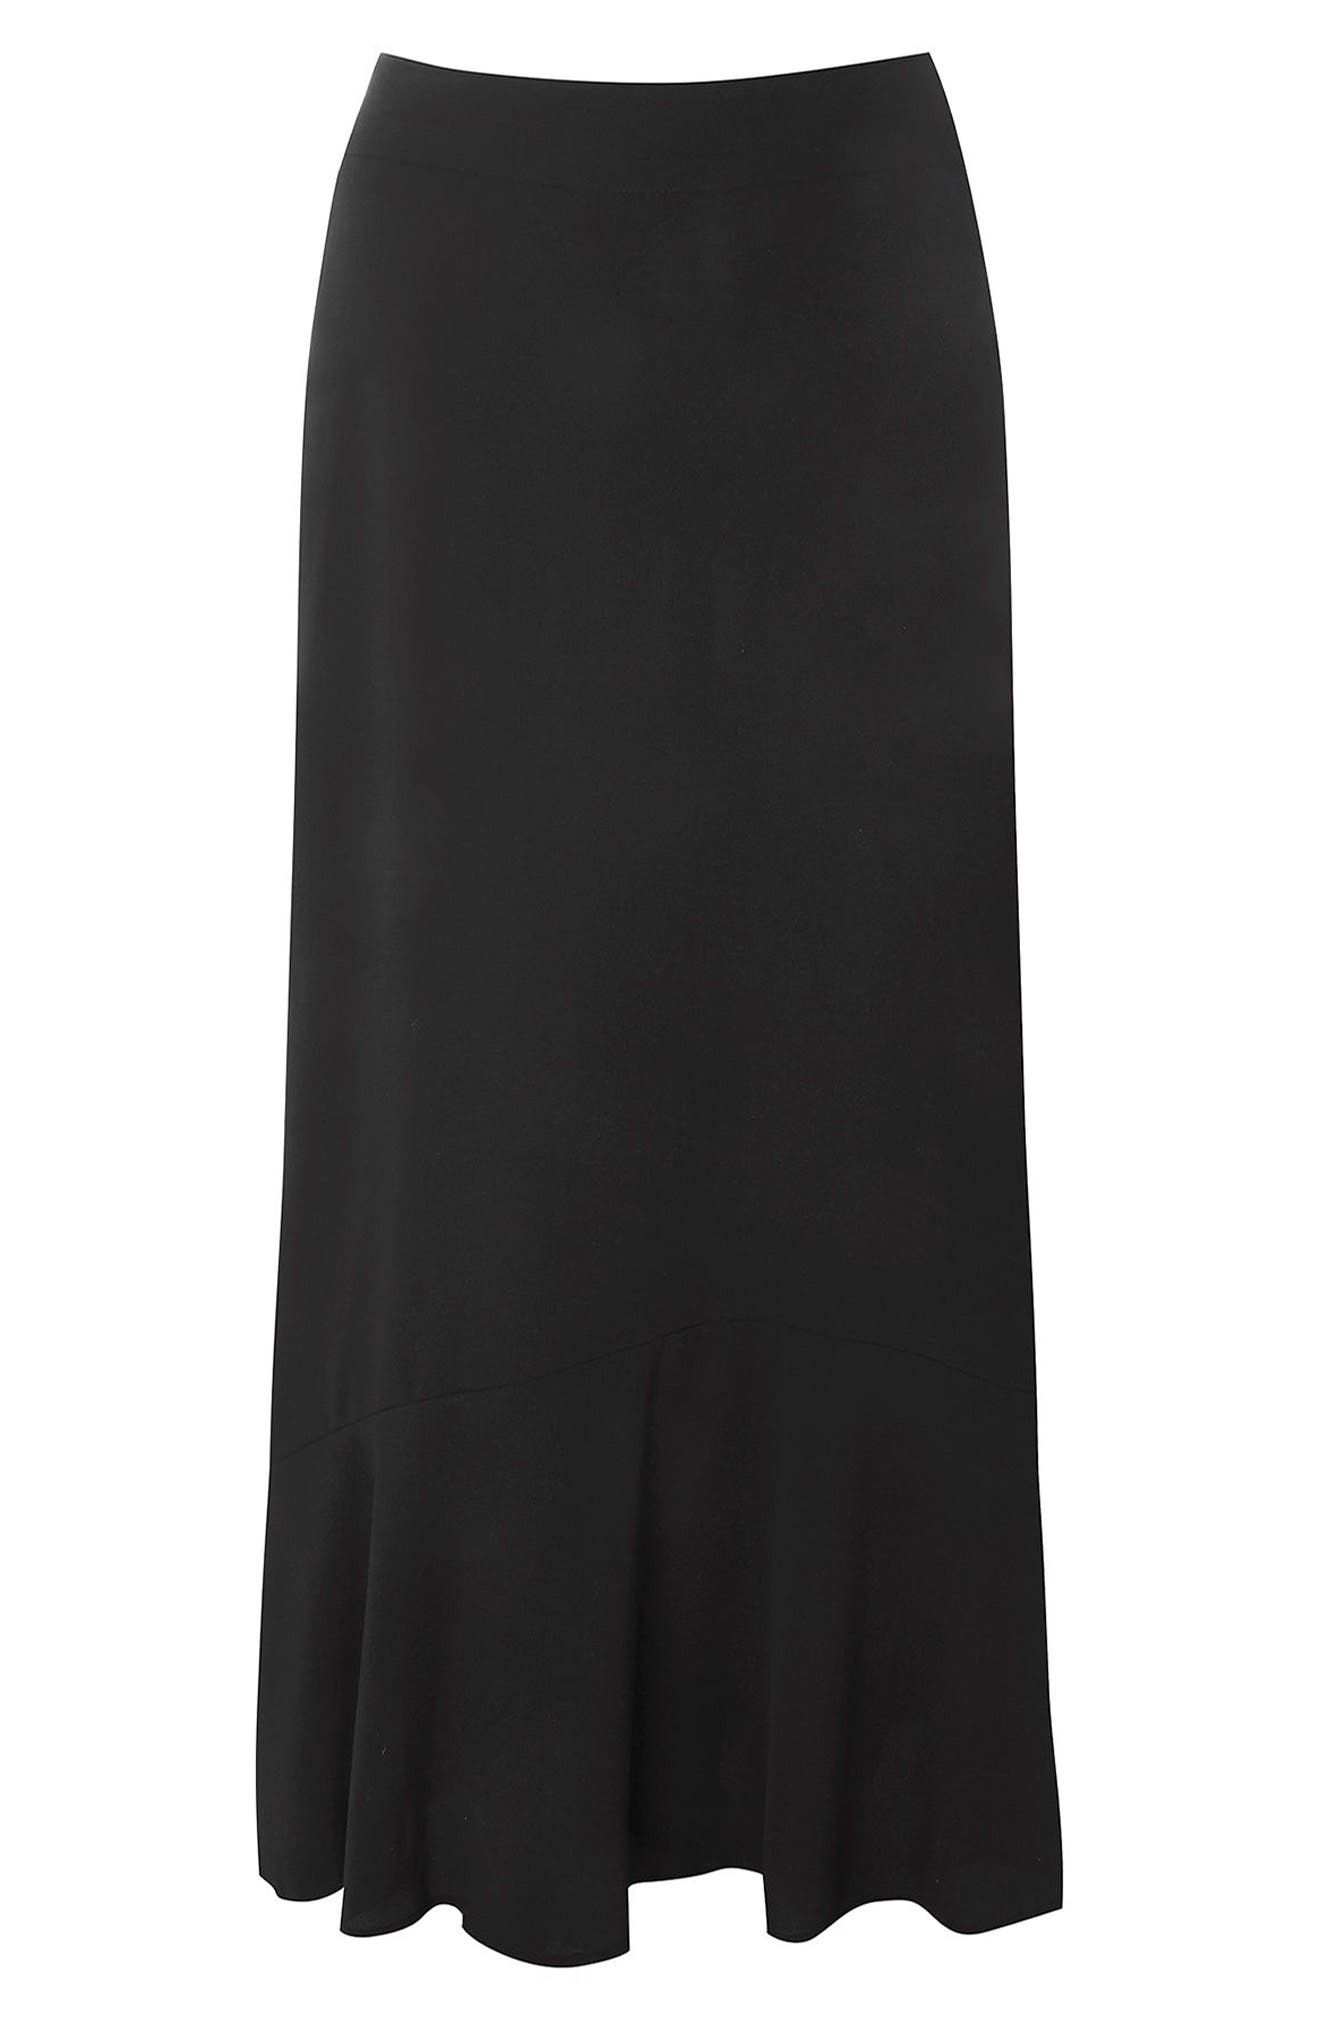 long skirts | Nordstrom